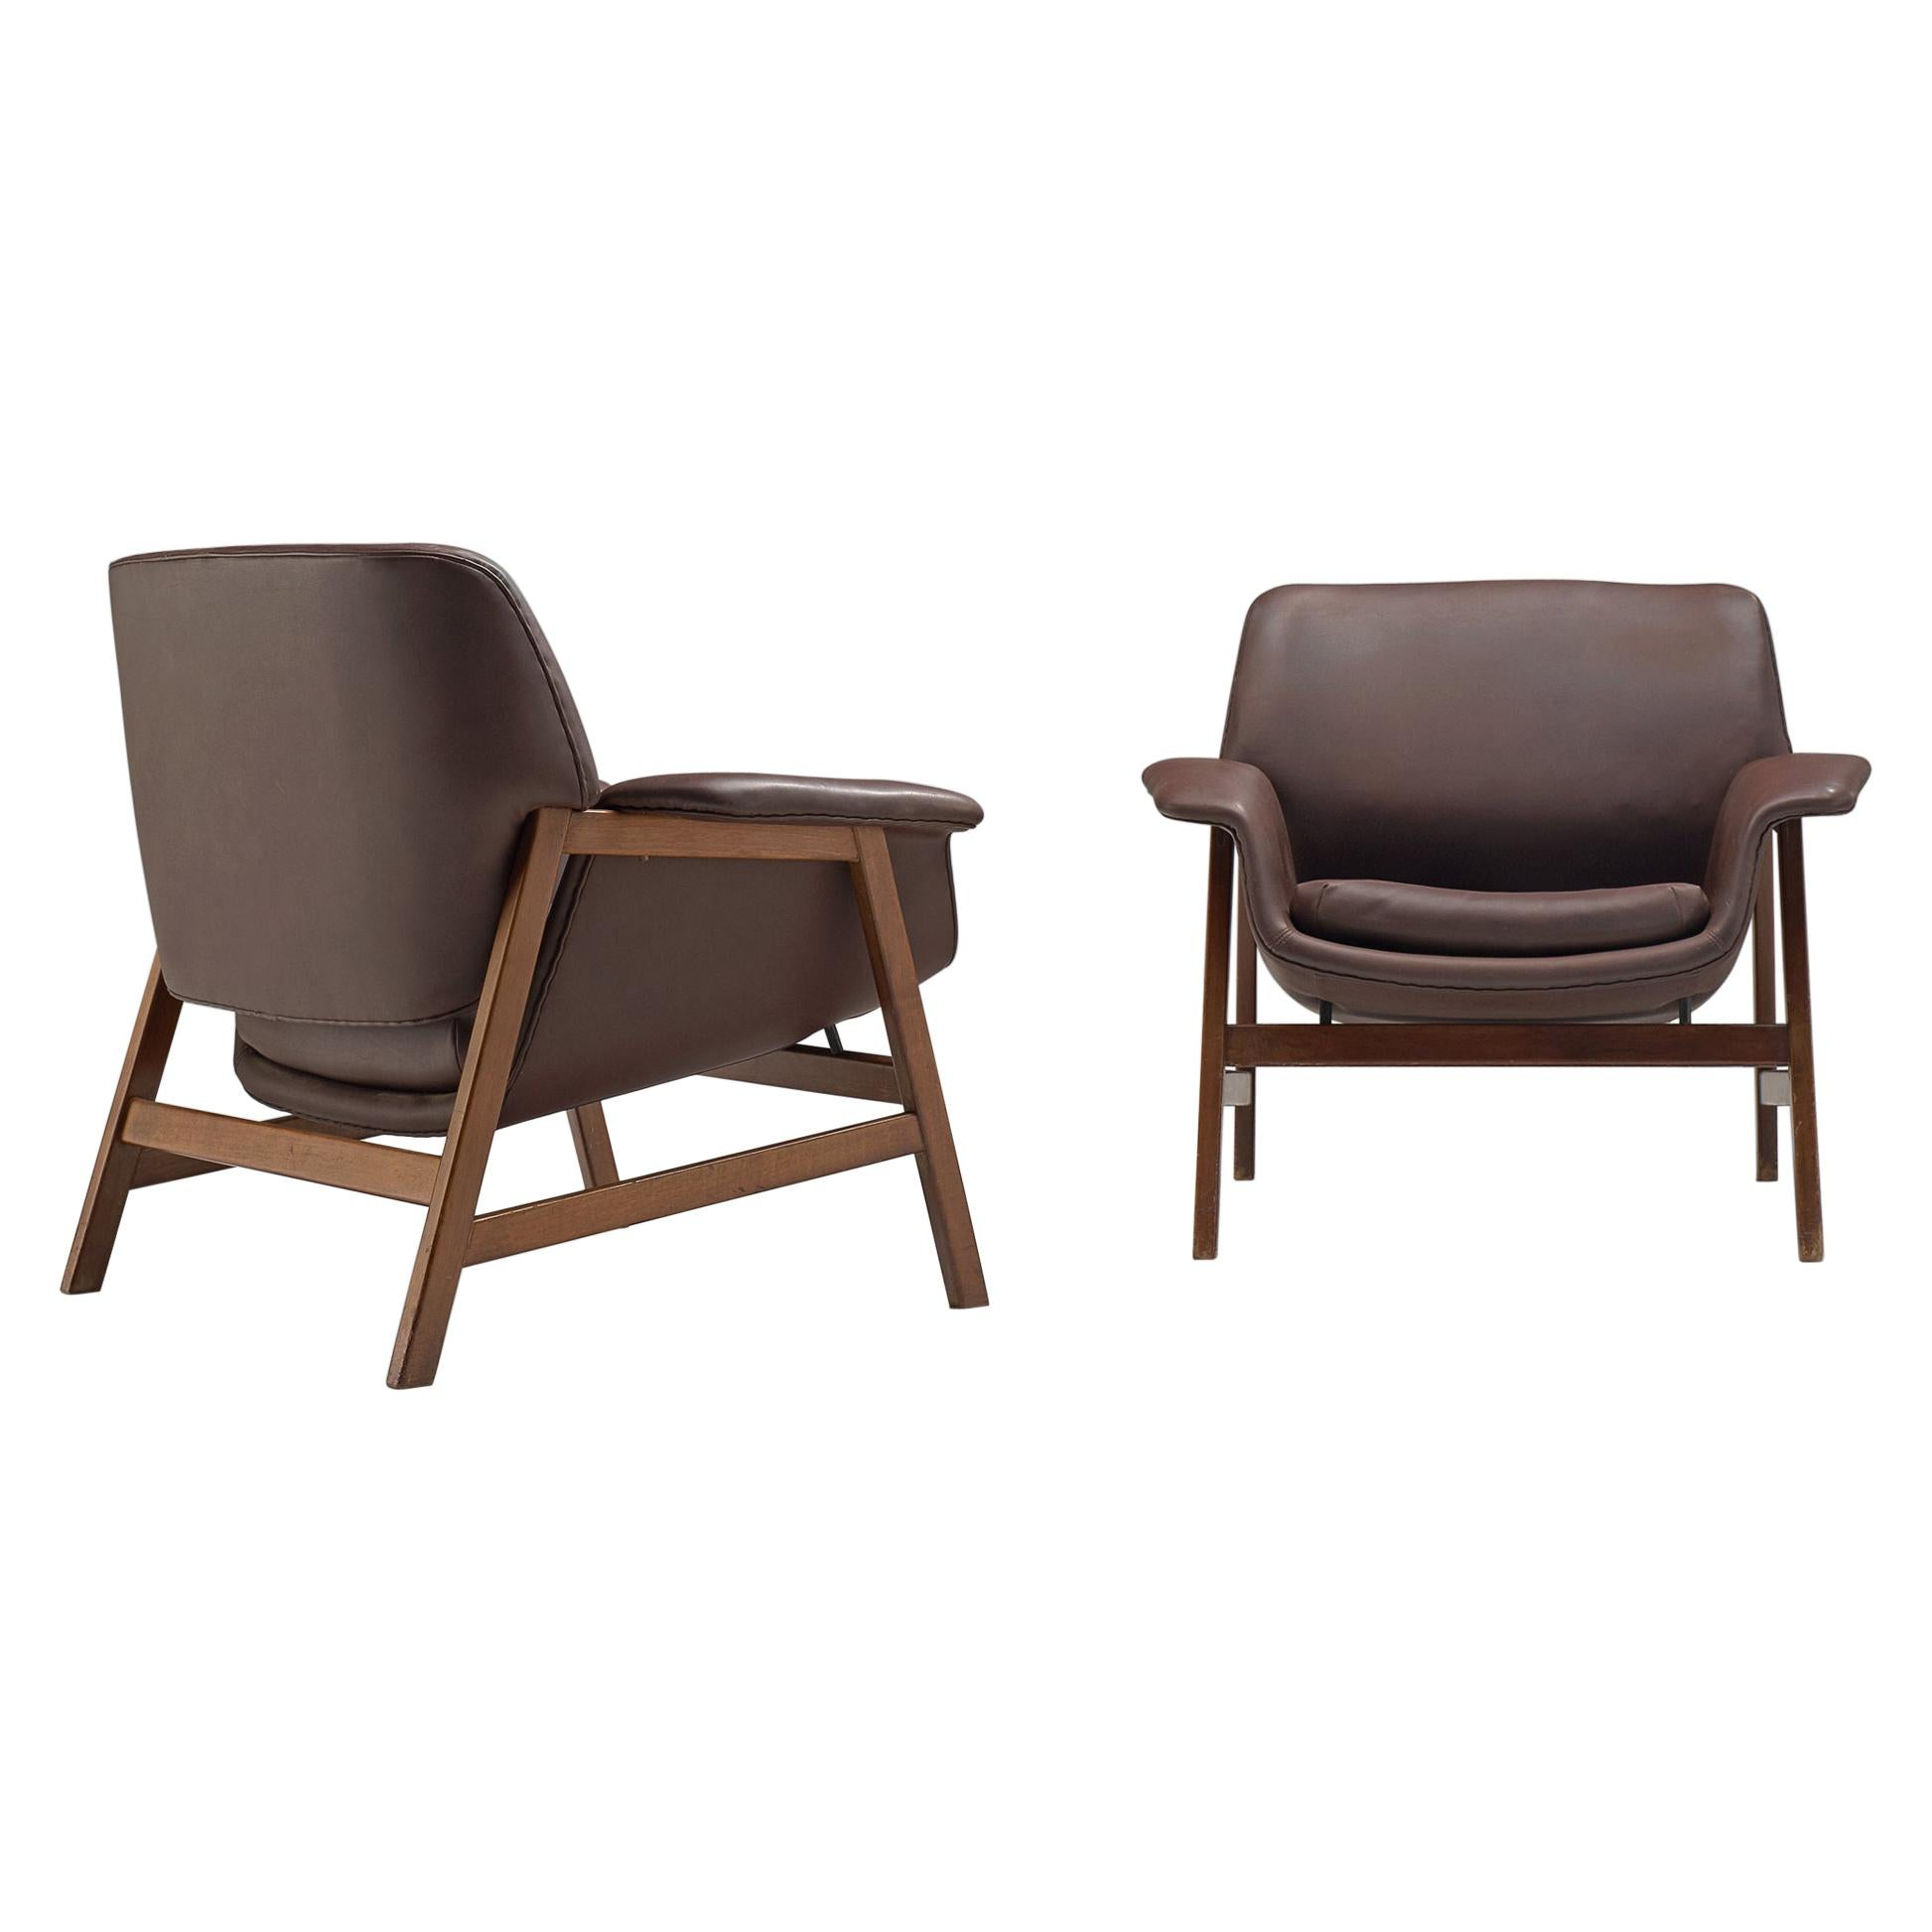 Gianfranco Frattini for Cassina Pair of Lounge chairs '849' in Walnut